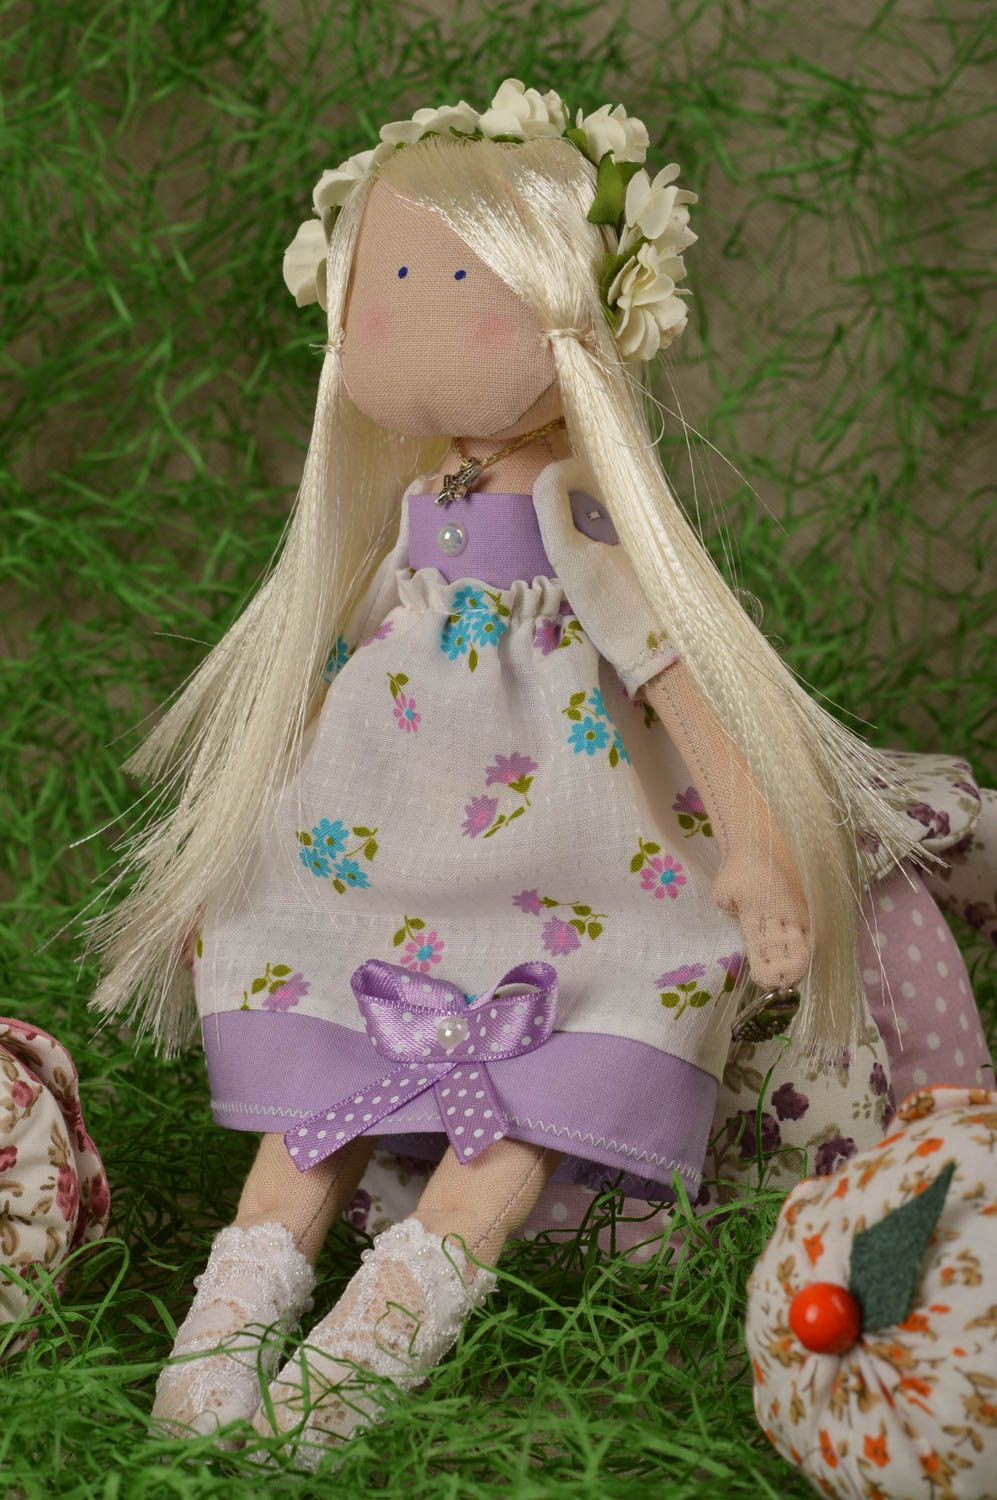 Soft doll handmade girl doll homemade decorations souvenir ideas gifts for her photo 1